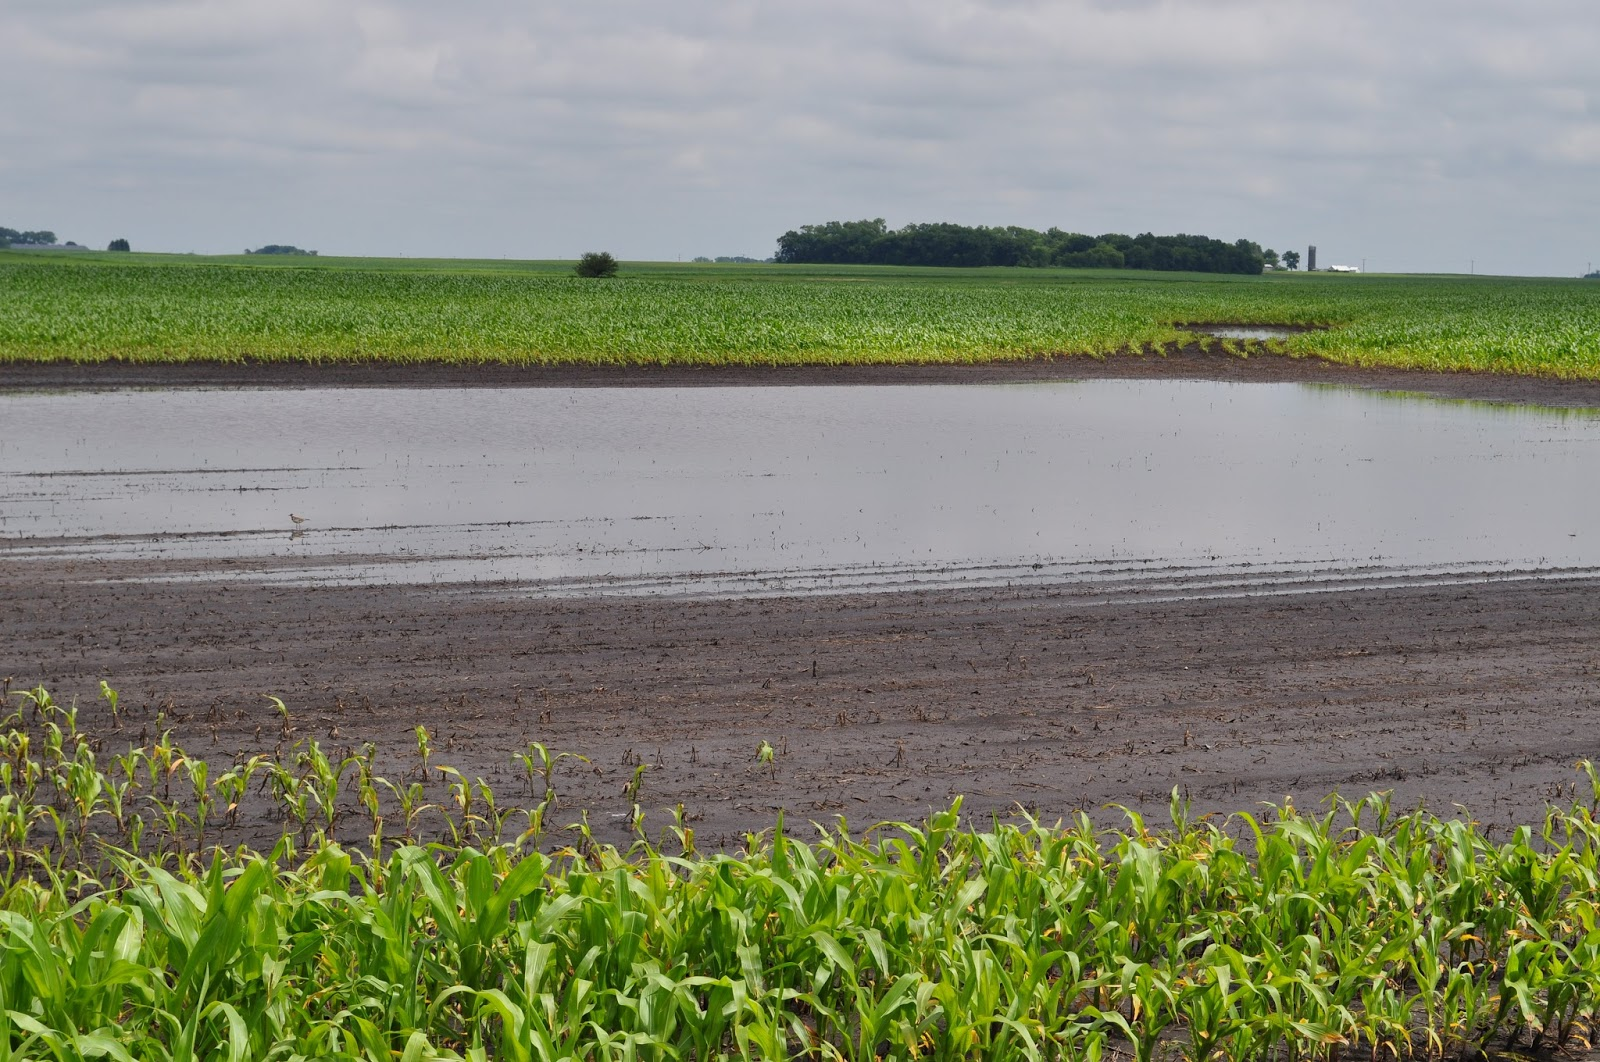 Drowned-out or hailed-out crops and prevented planting